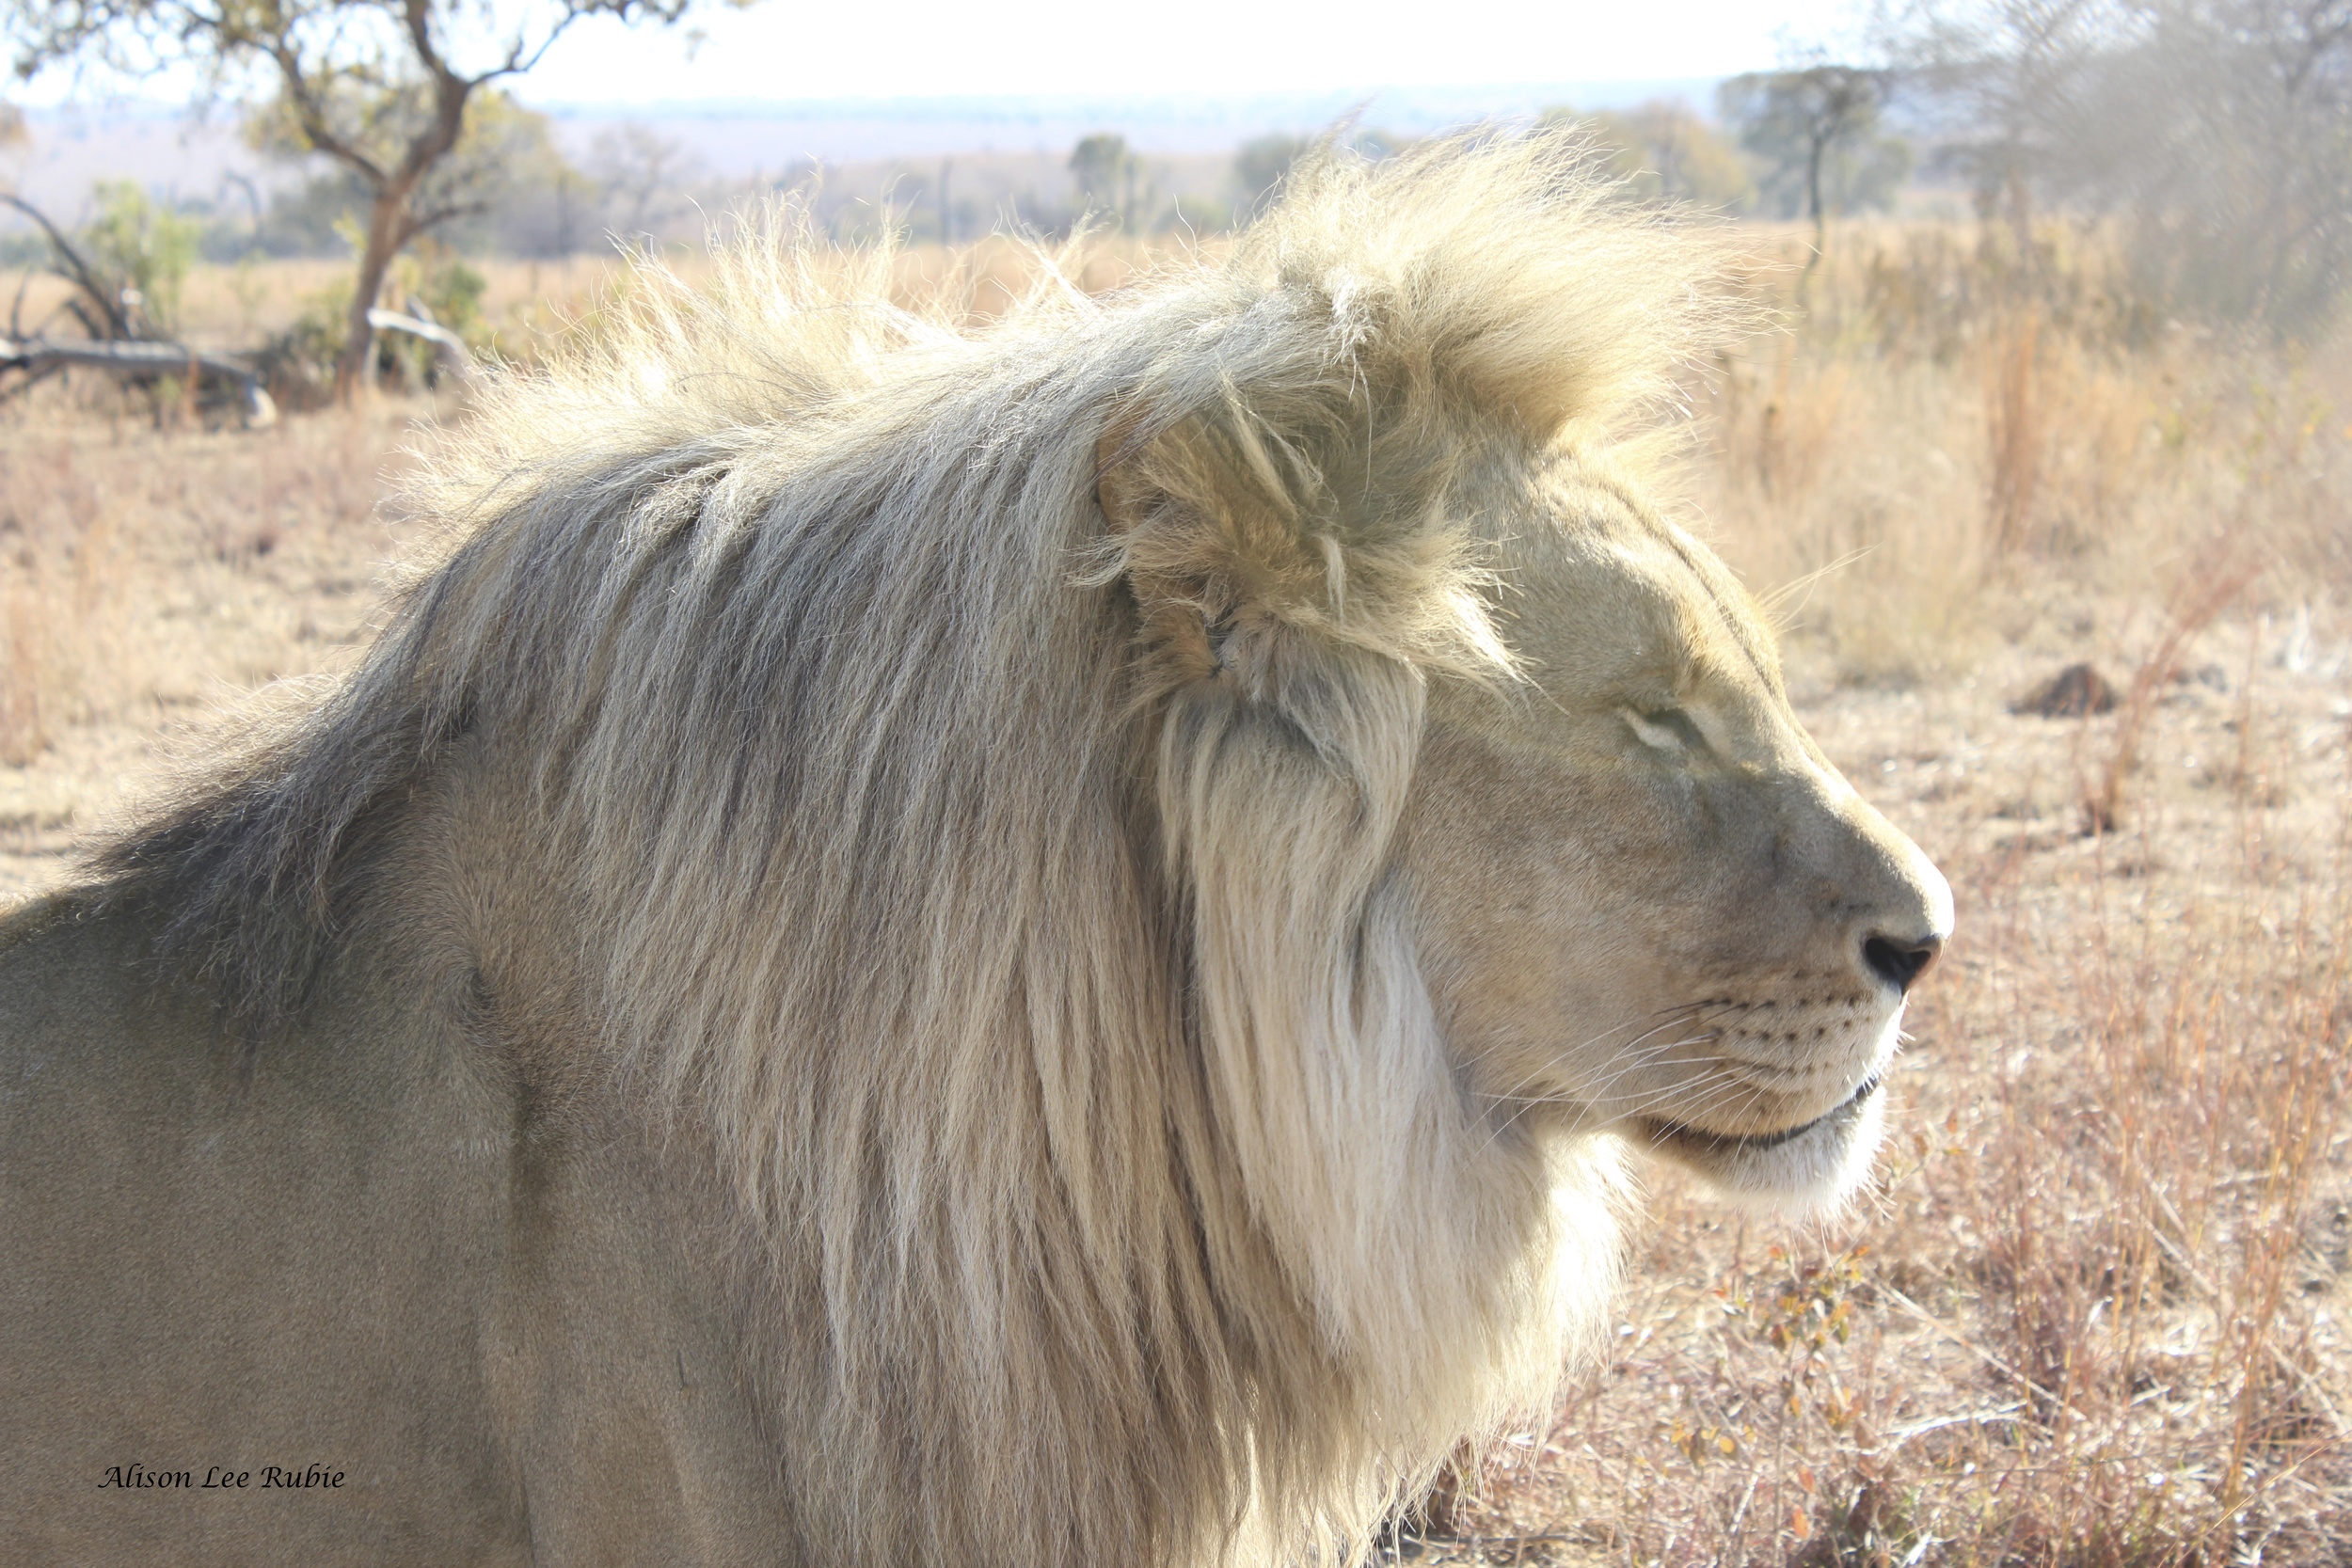 The Majestic King of the Jungle!